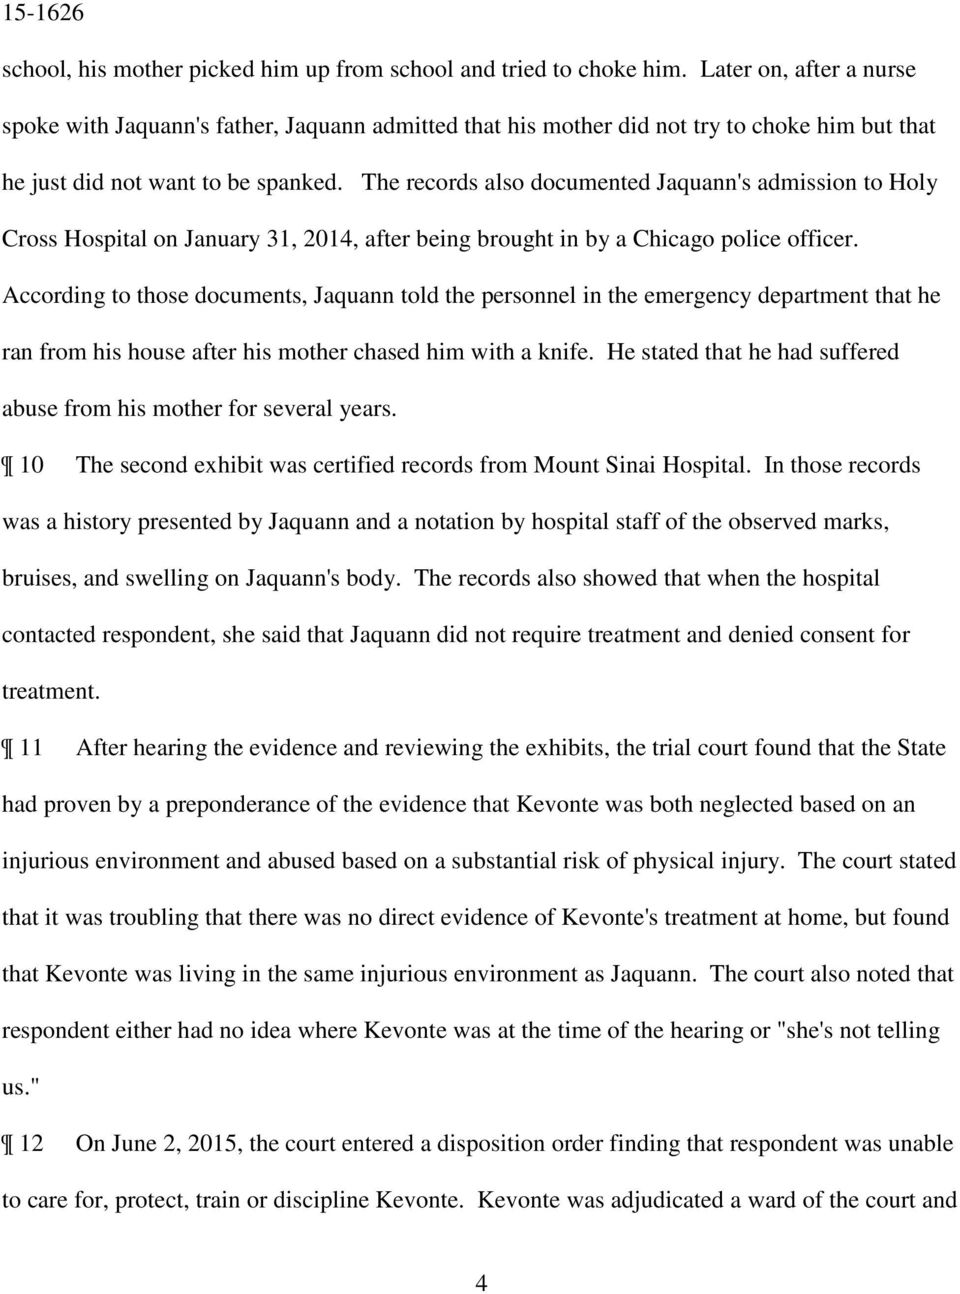 The records also documented Jaquann's admission to Holy Cross Hospital on January 31, 2014, after being brought in by a Chicago police officer.